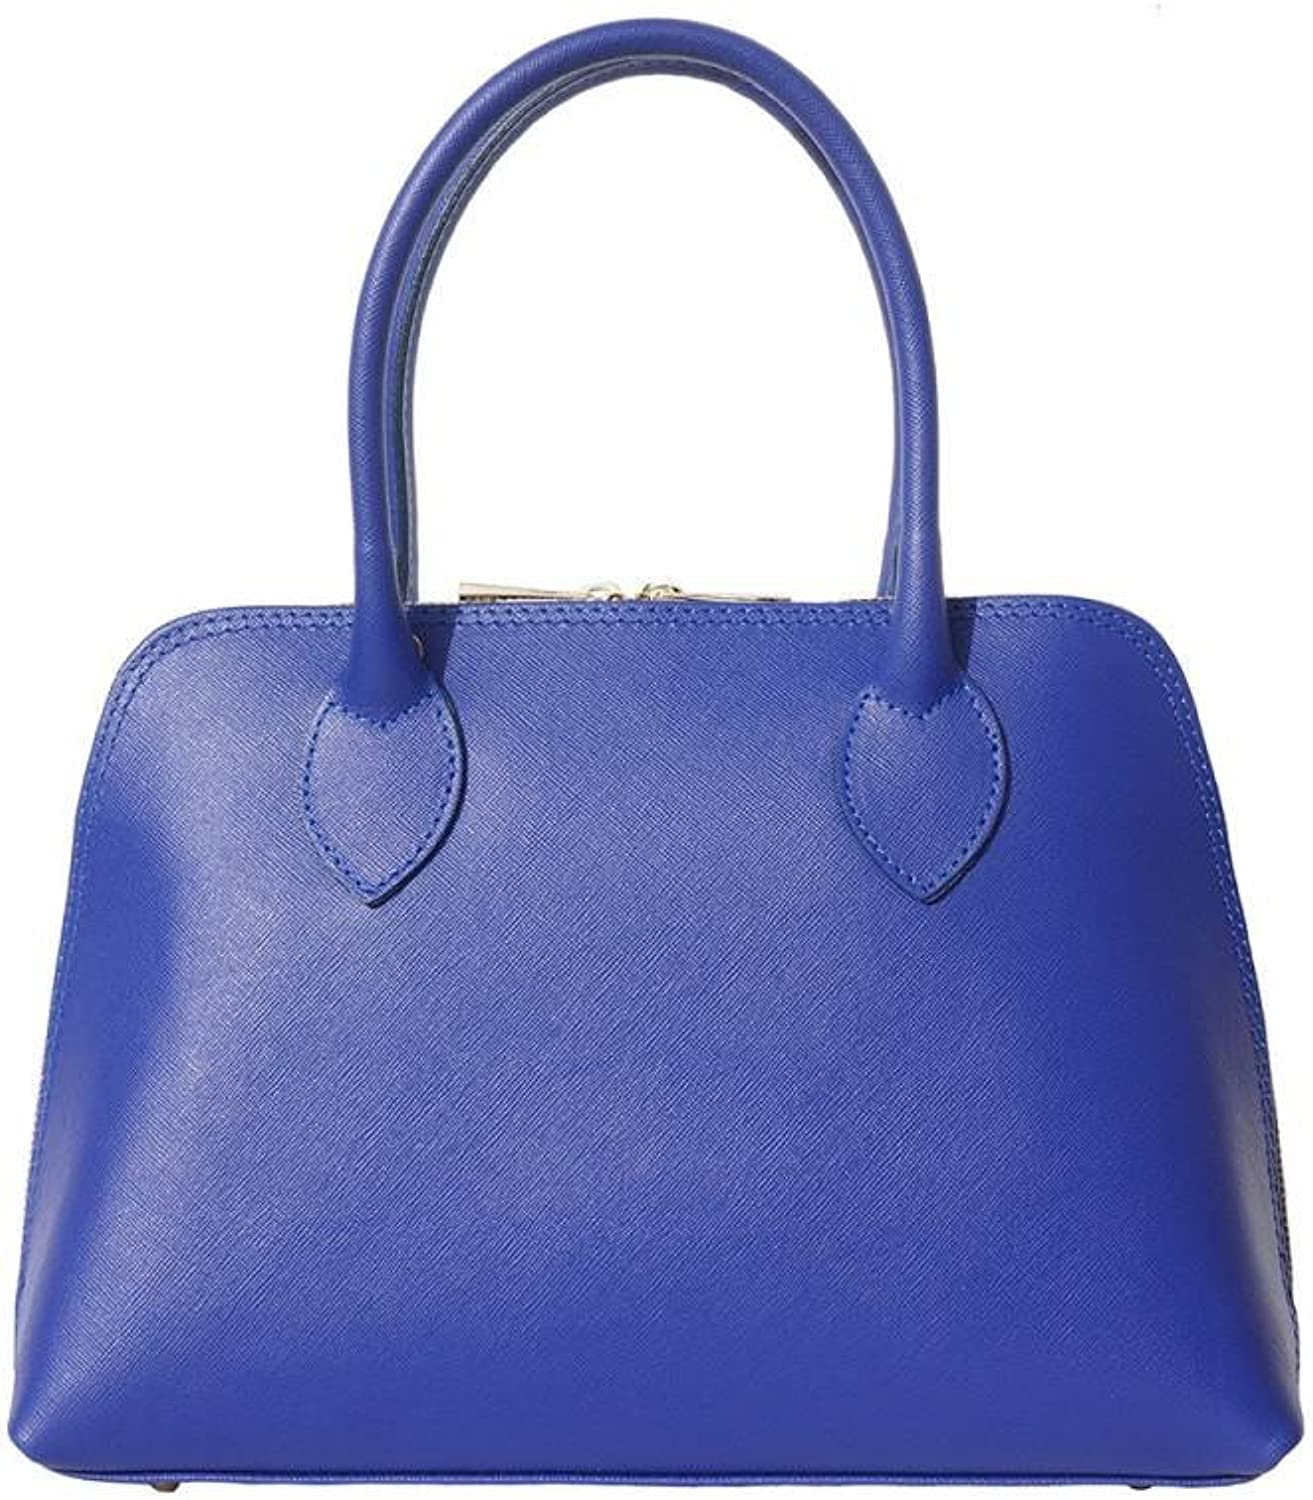 Borse in Pelle Saffiano Leather TOP Handle Bag Electric bluee